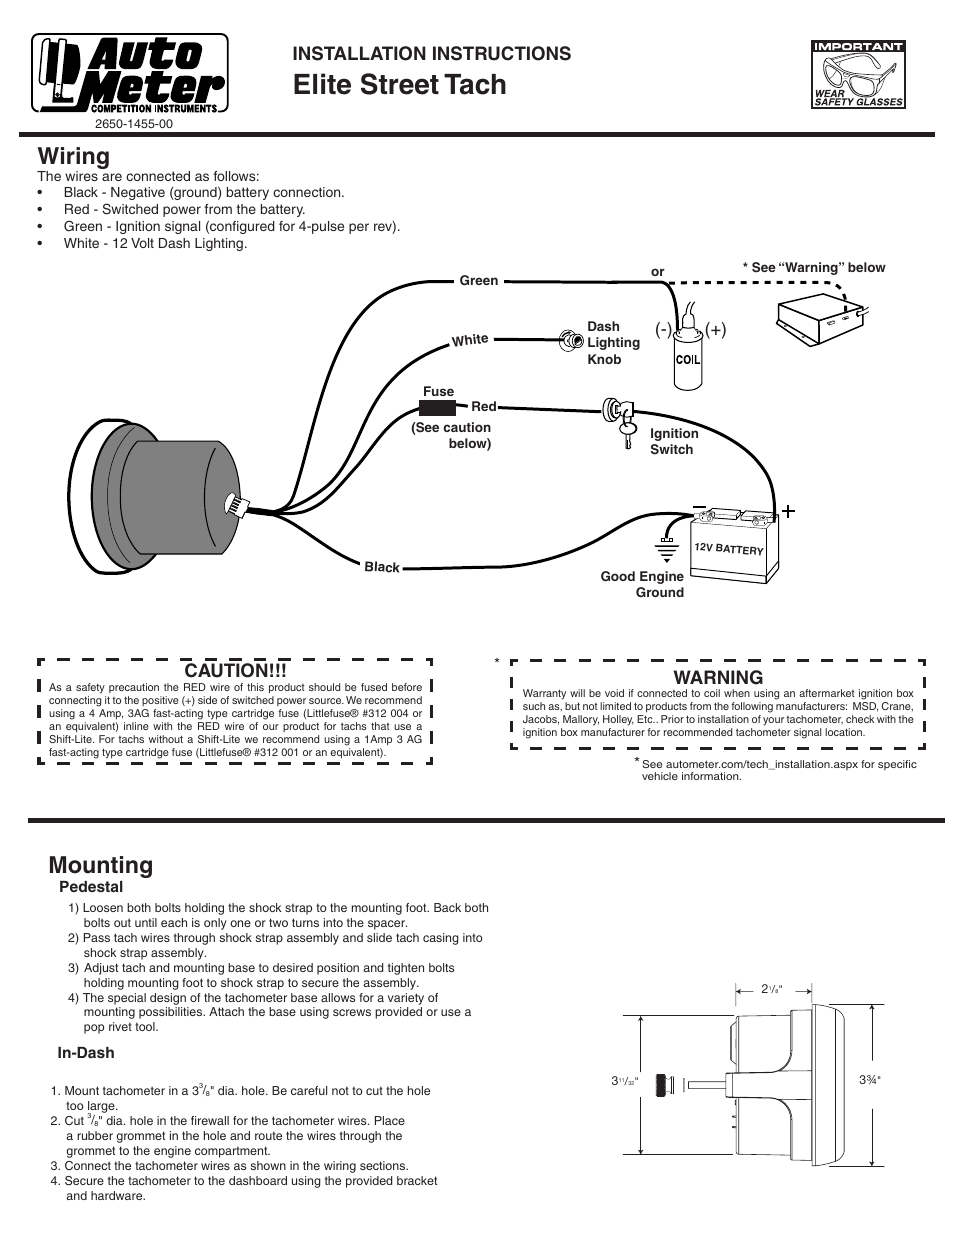 Sunpro Super Tach 2 Wiring Diagram from i2.wp.com